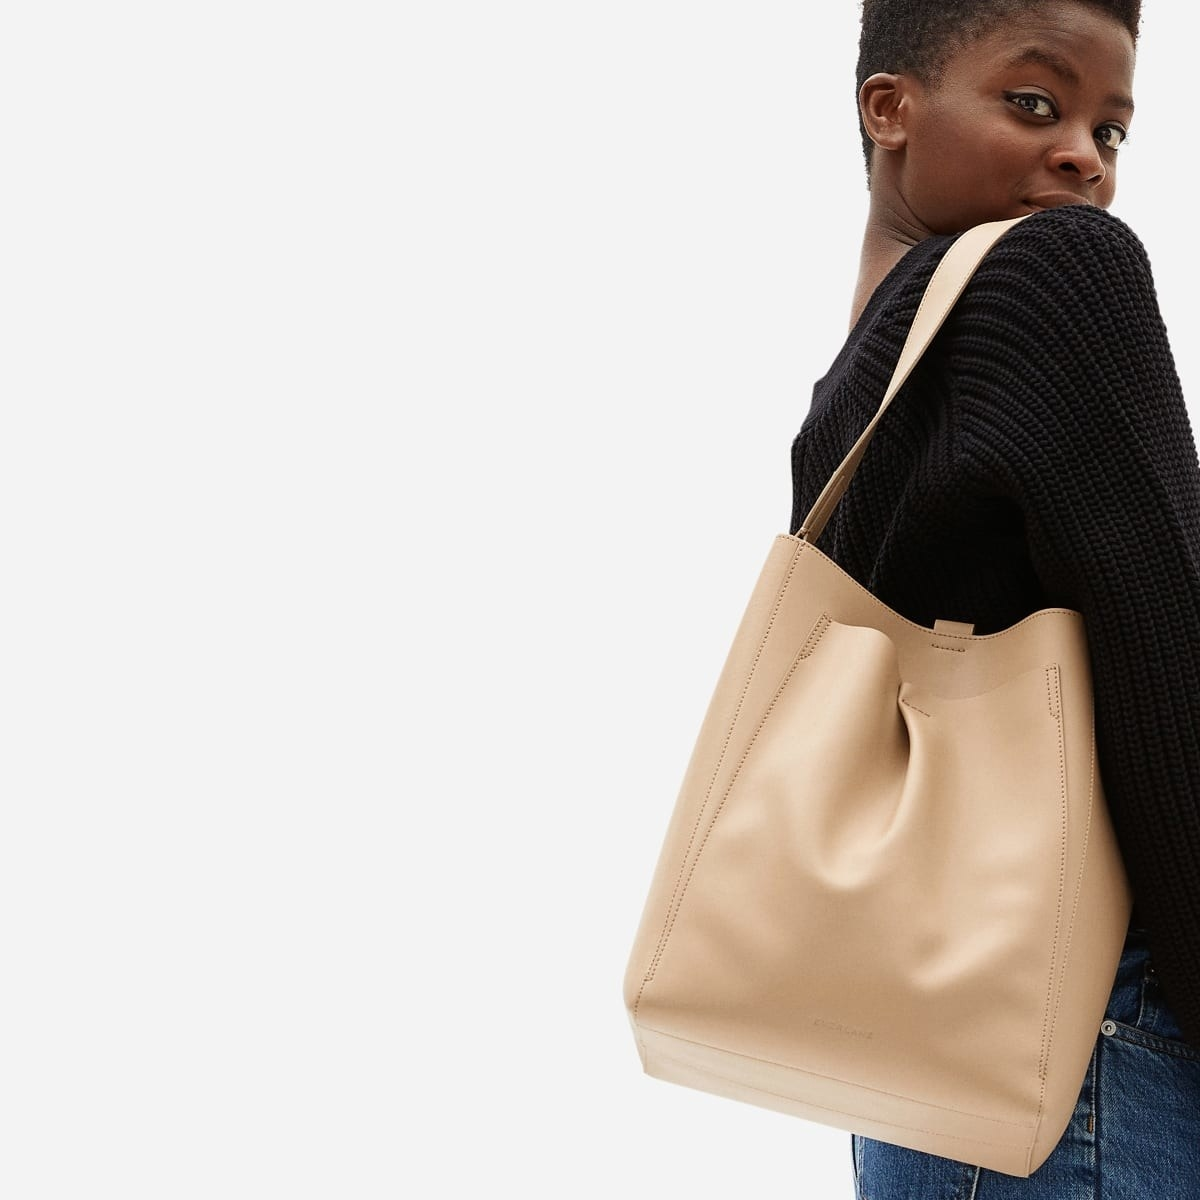 model carrying the bag